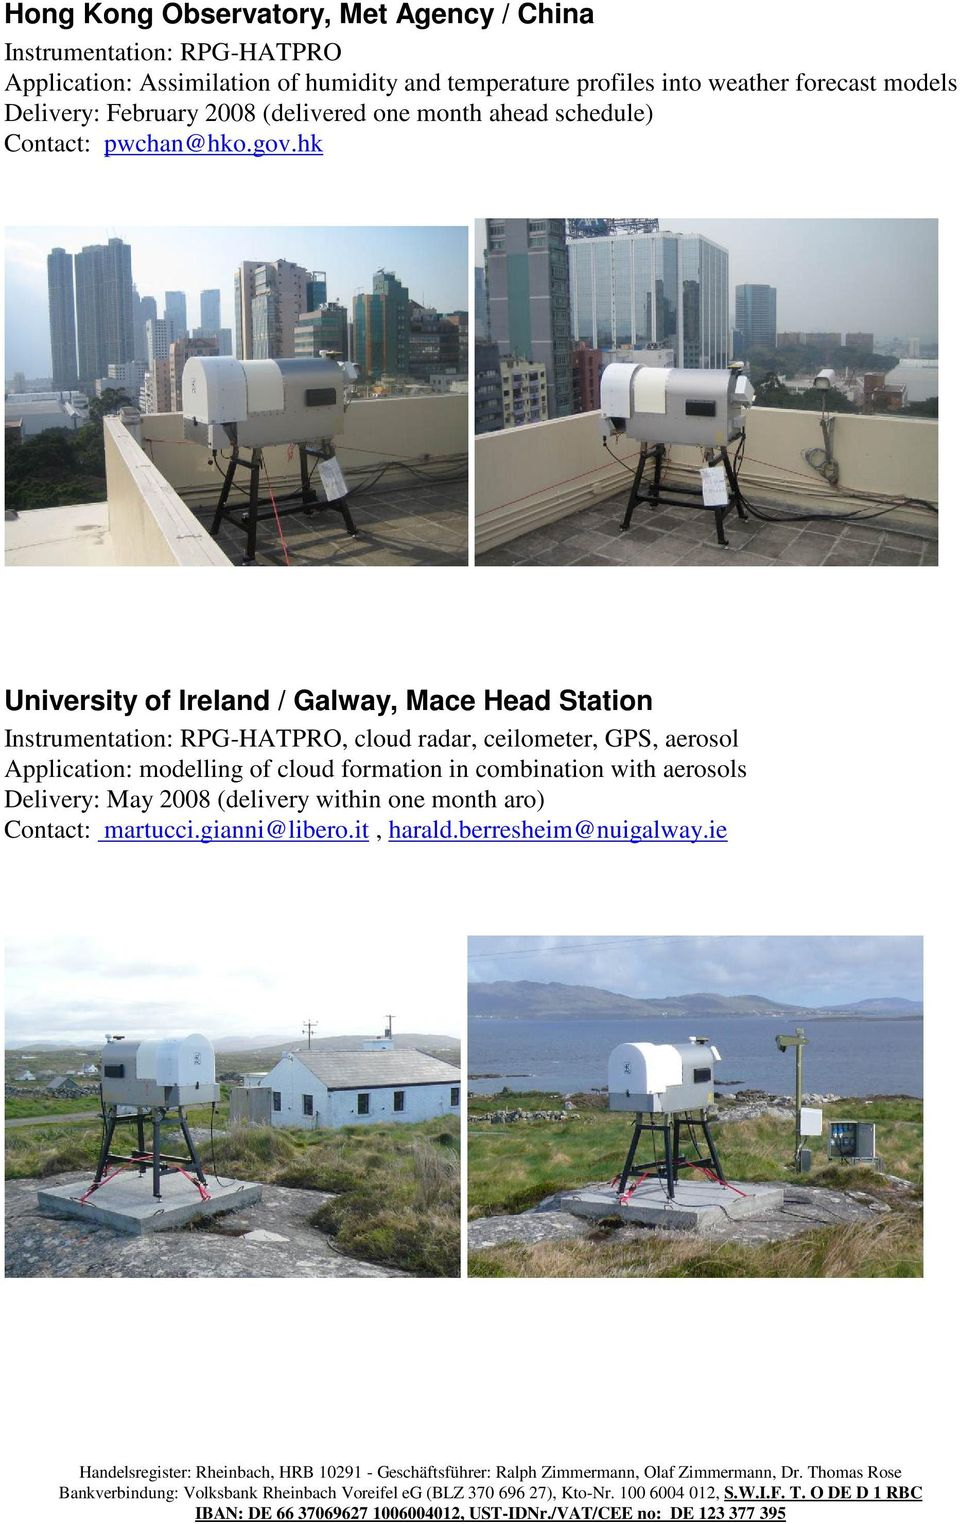 hk University of Ireland / Galway, Mace Head Station Instrumentation: RPG-HATPRO, cloud radar, ceilometer, GPS, aerosol Application: modelling of cloud formation in combination with aerosols